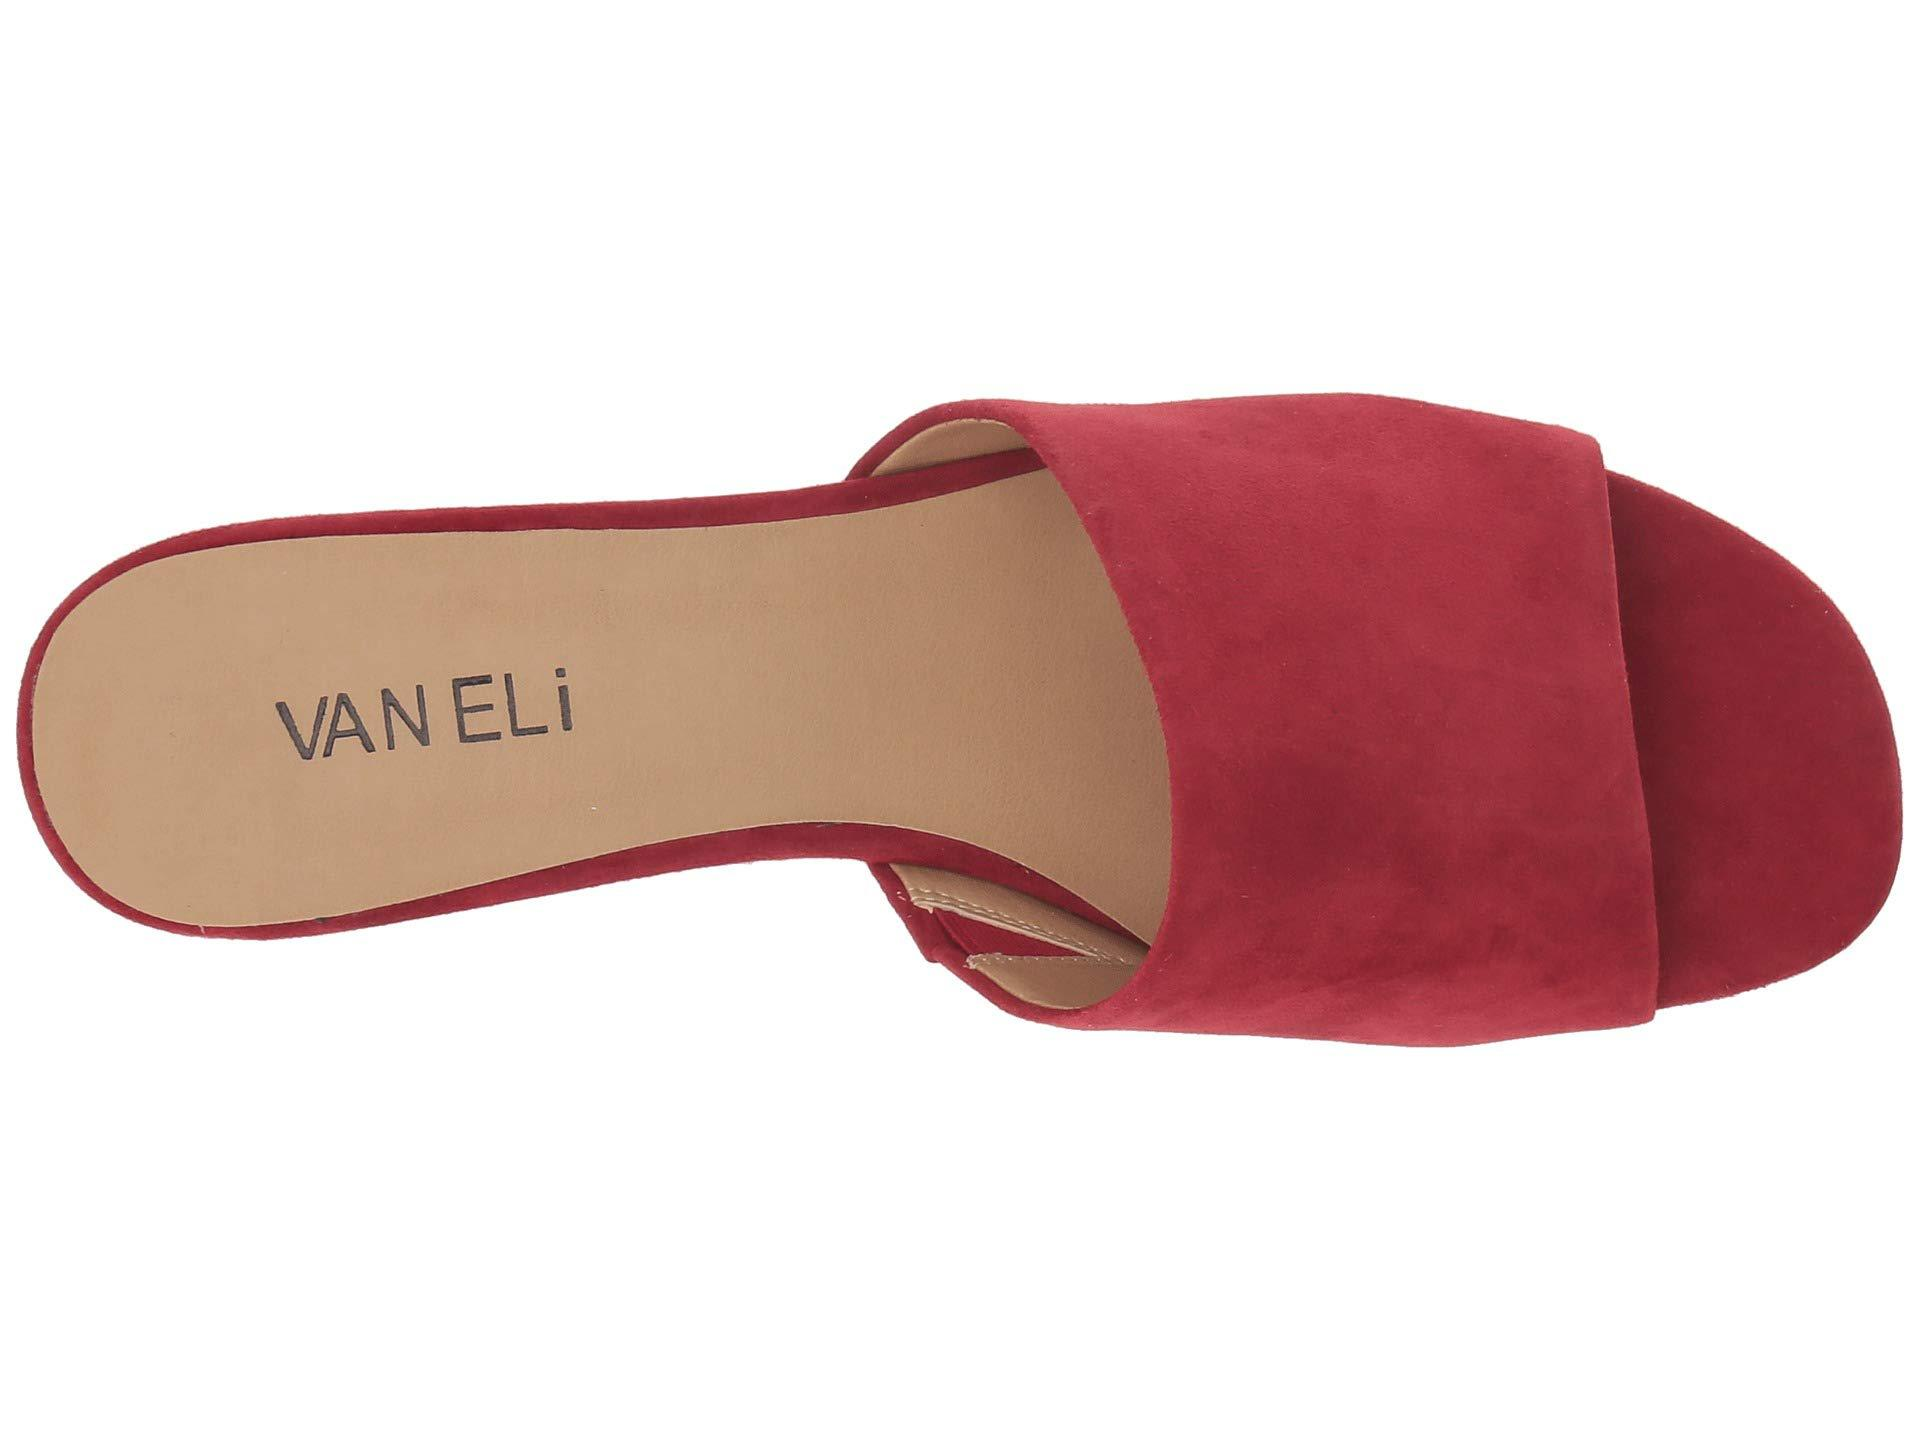 62b49be9f5ab Lyst - Vaneli Piny in Red - Save 21%